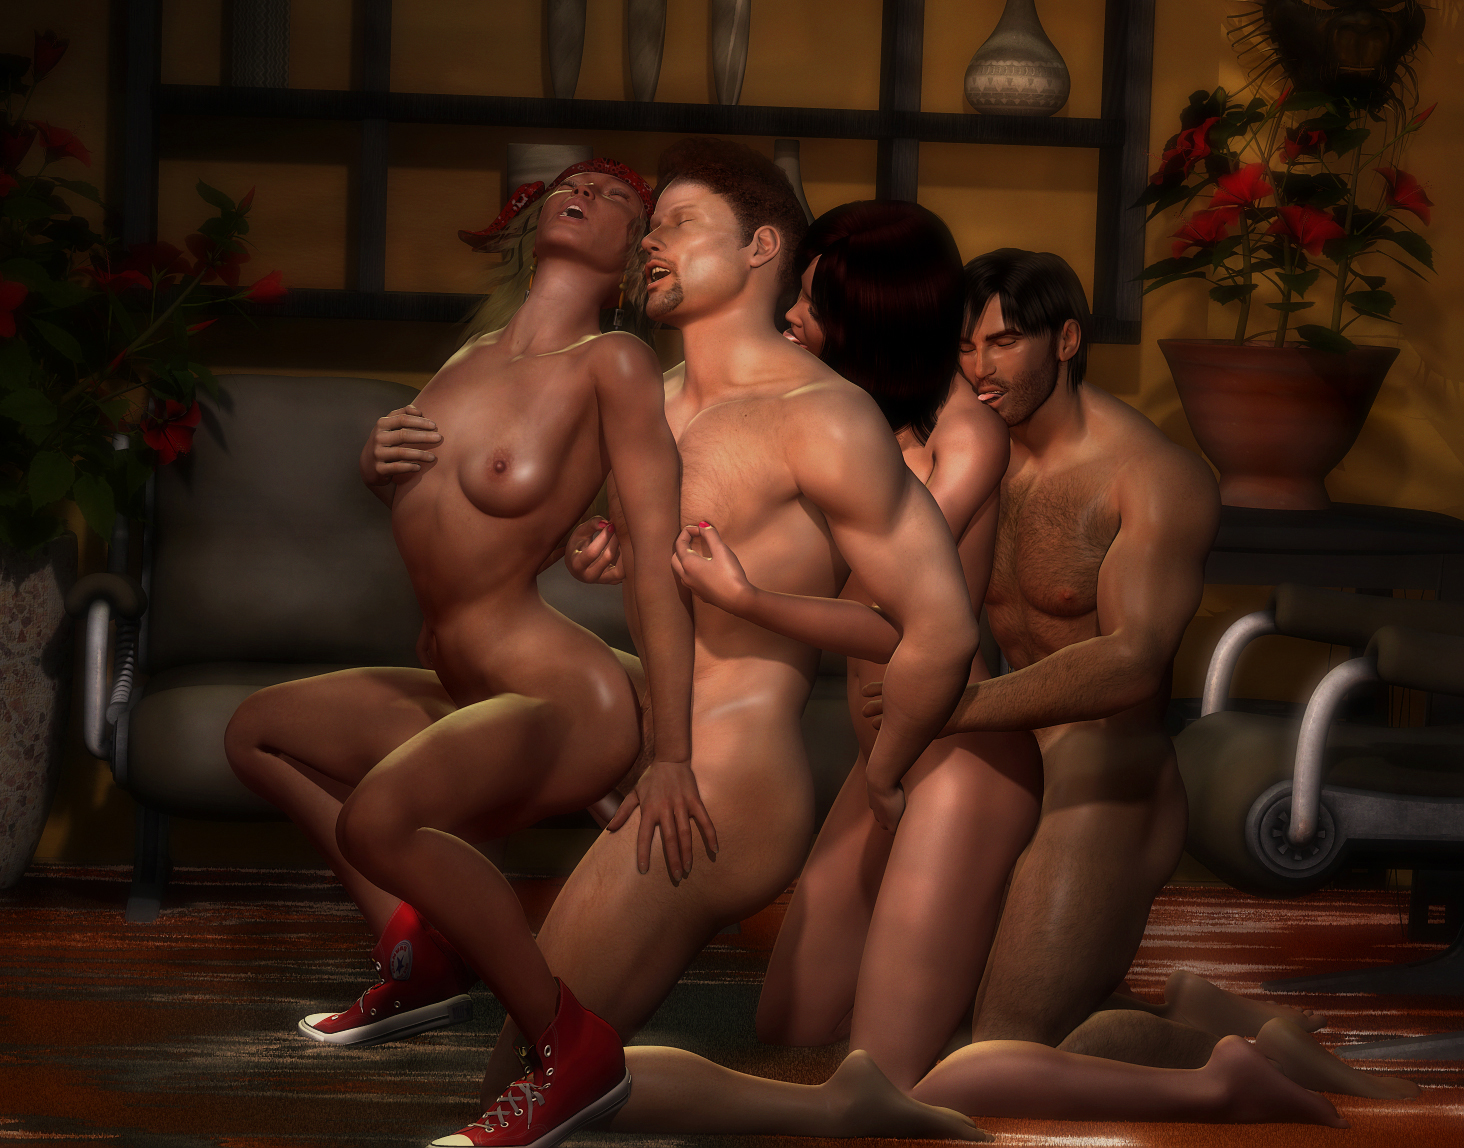 Cartoon sex3d nsfw scene